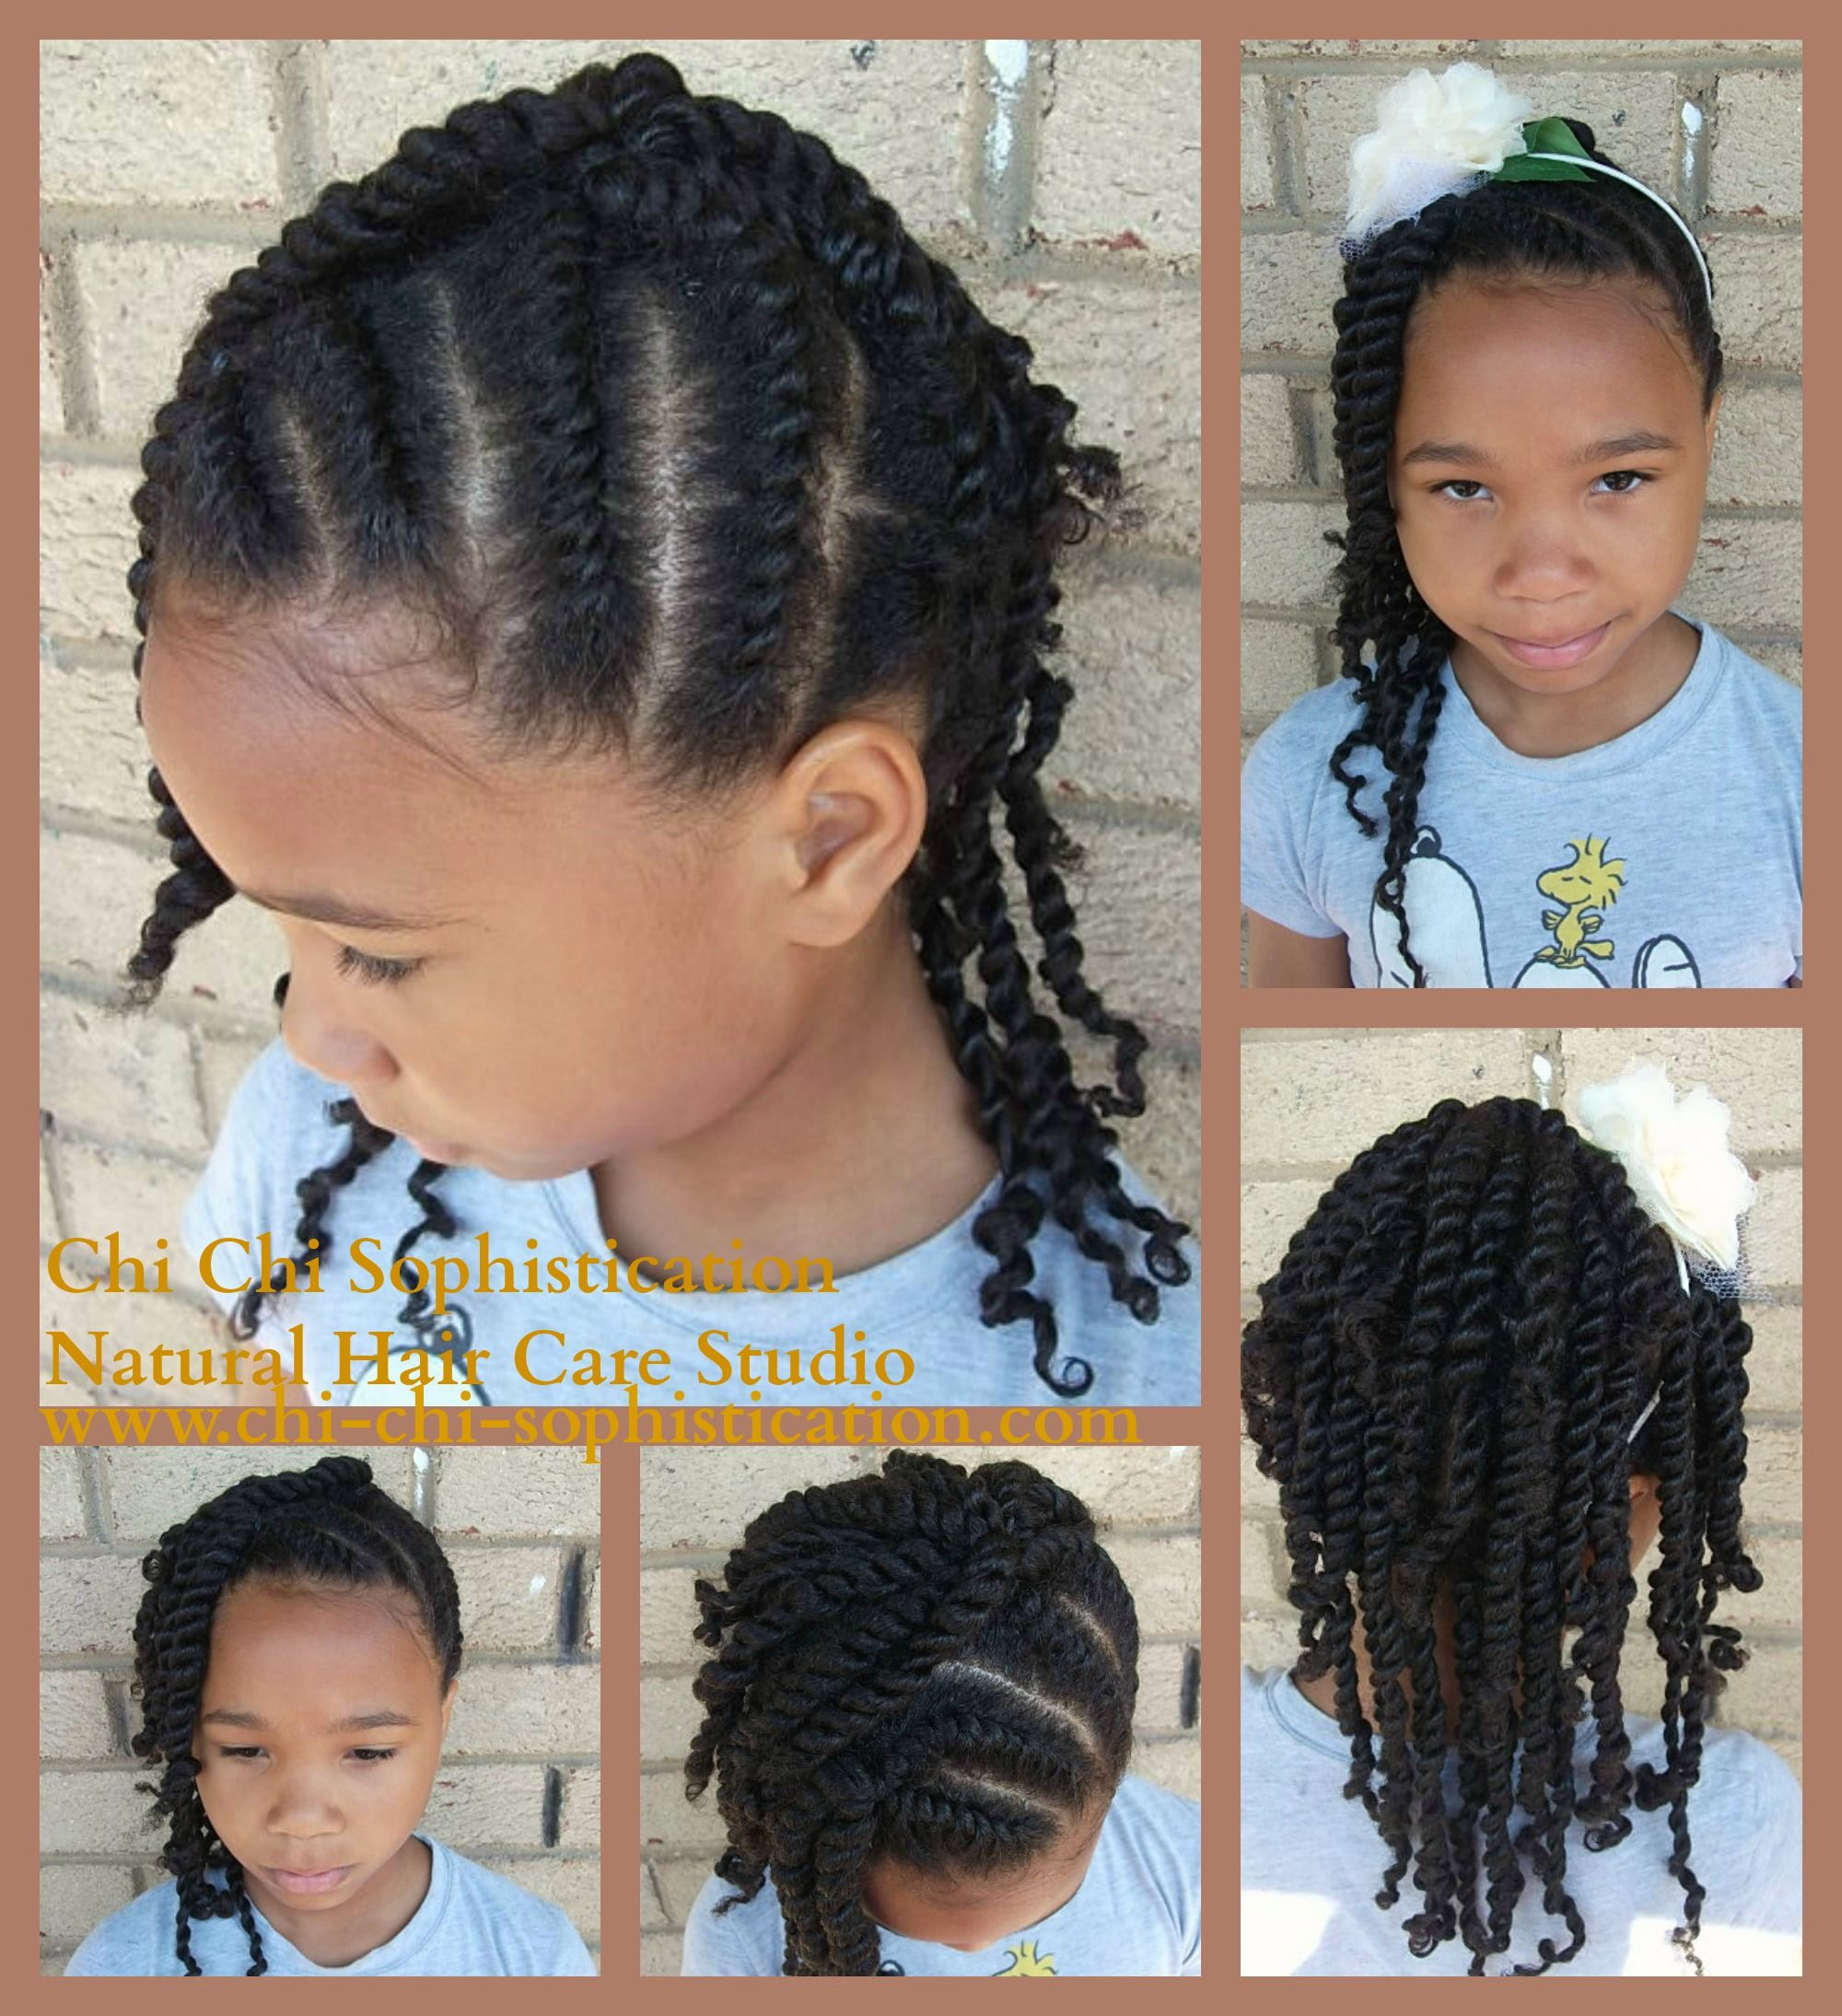 Pin By Chi Chi Sophistication Natural On Children Hair Styles By Chi Chi Sophistication Natural Hair Studio Hair Styles Twist Hairstyle Kids Lil Girl Hairstyles